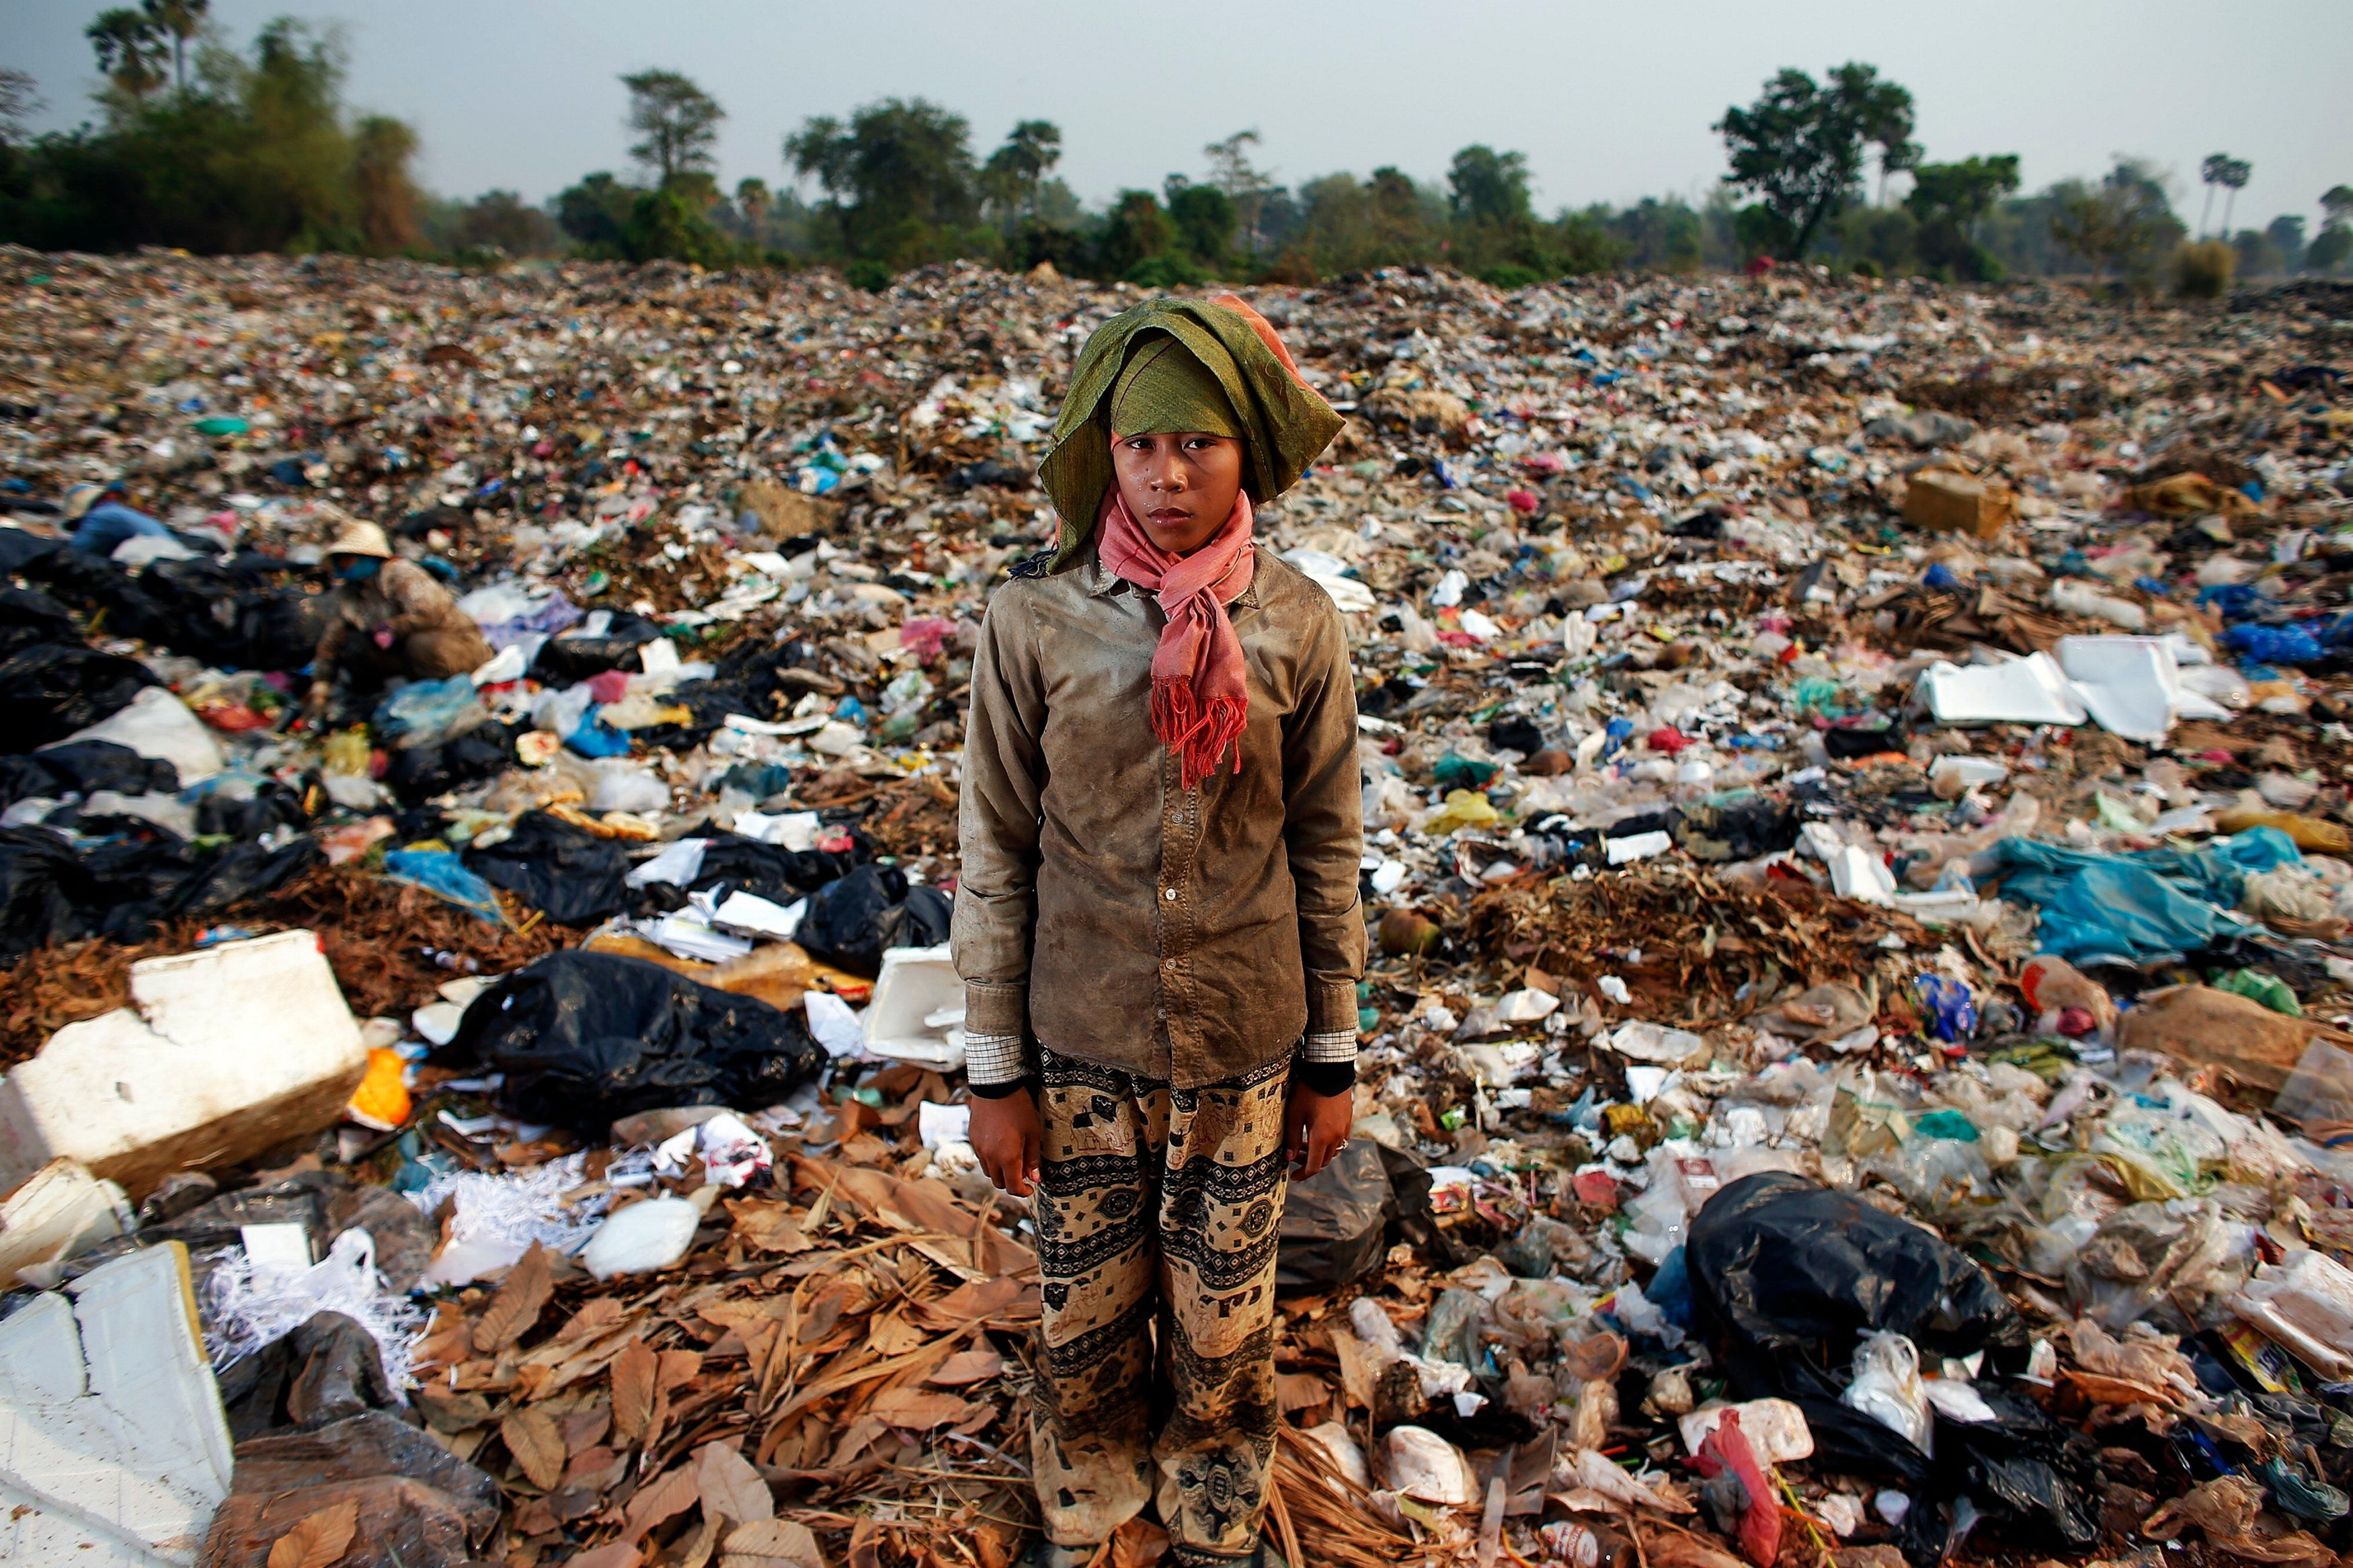 Chan Thy, a 15-year-old girl, poses for a picture while collecting usable items at landfill dumpsite outside Siem Reap March 19, 2015. She works non-stop at the dumpsite earning 2 USD a day after finishing six-grade primary school two years ago. Anlong Pi, an eight-hectare dumpsite situated close to the famous Cambodian resort province of Siem Reap, has recently become a tourist attraction in its own right. Sightseers pose for pictures with children who scavenge scraps for a living, making between $0.25 and $2 per day, according to a representative of a company overseeing the waste. Michelle Obama is due to visit to Cambodia to promote Let Girls Learn, a worldwide initiative that aims to help adolescent girls attend school.   REUTERS/Athit Perawongmetha  PICTURE 10 OF 23 FOR WIDER IMAGE STORY 'LIVING ON RUBBISH'  SEARCH 'ANLONG PI' FOR ALL IMAGES